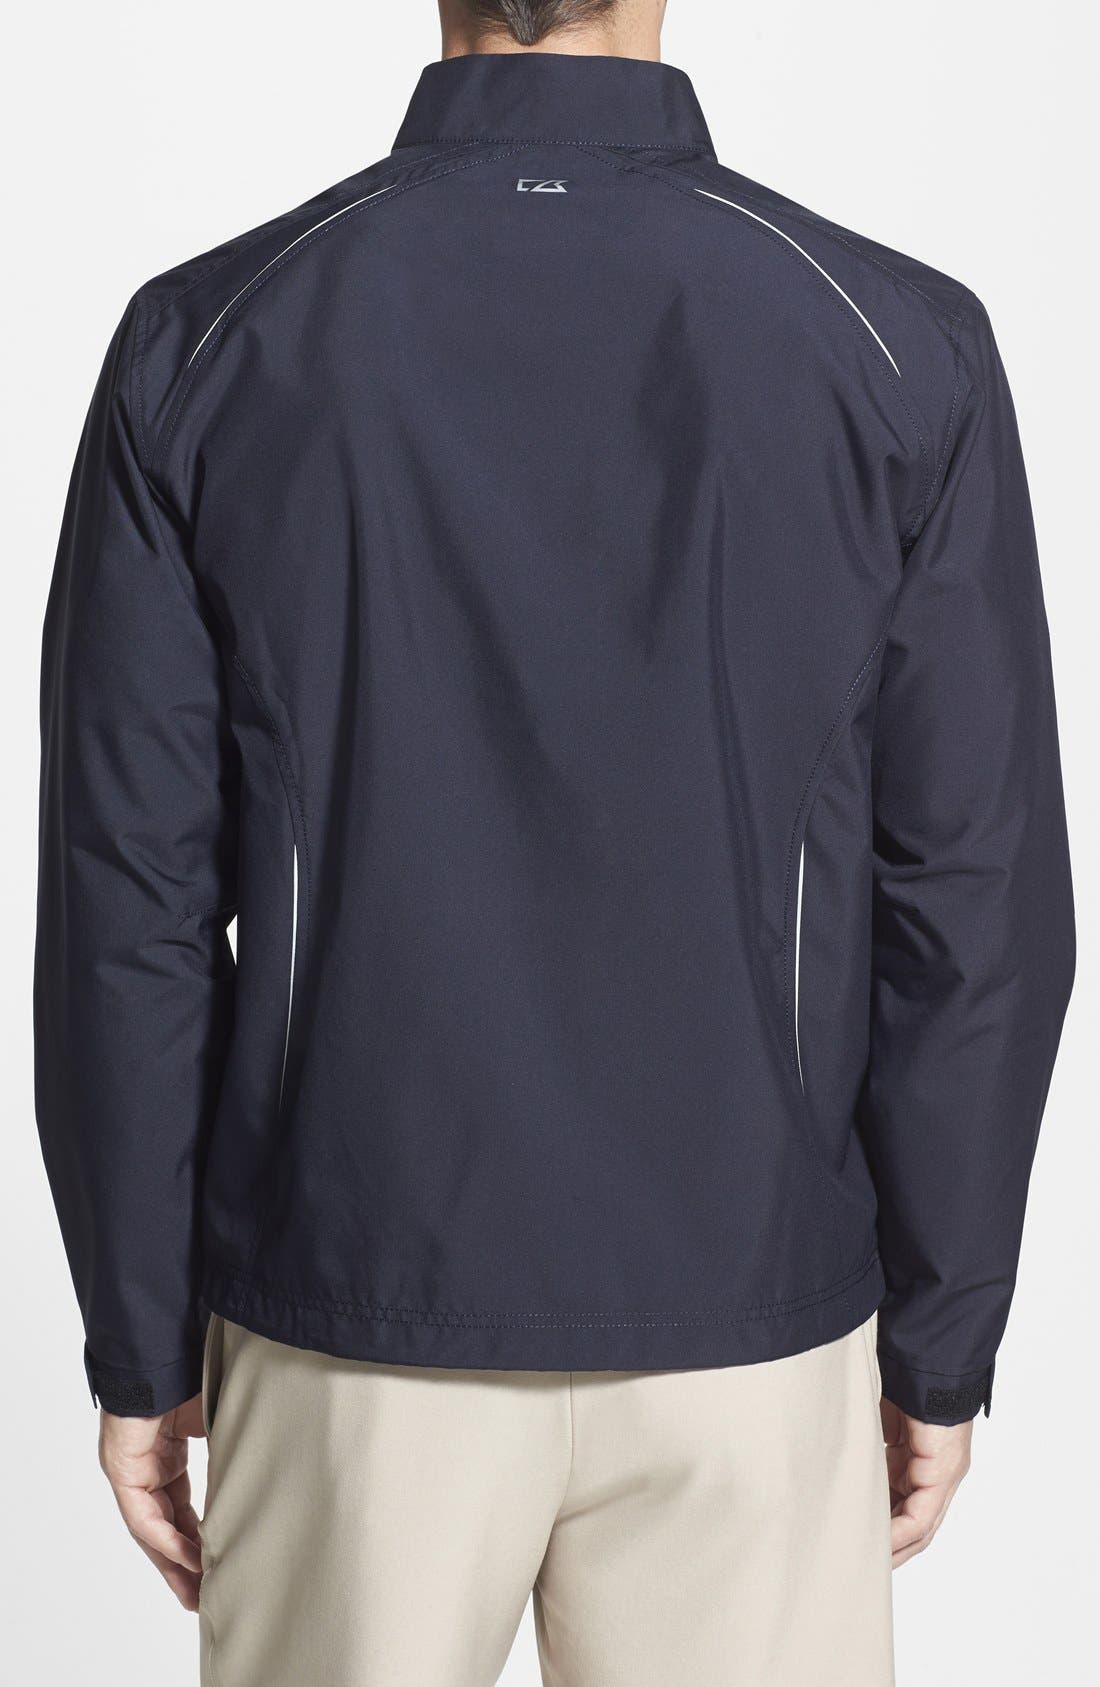 San Diego Chargers - Beacon WeatherTec Wind & Water Resistant Jacket,                             Alternate thumbnail 2, color,                             420